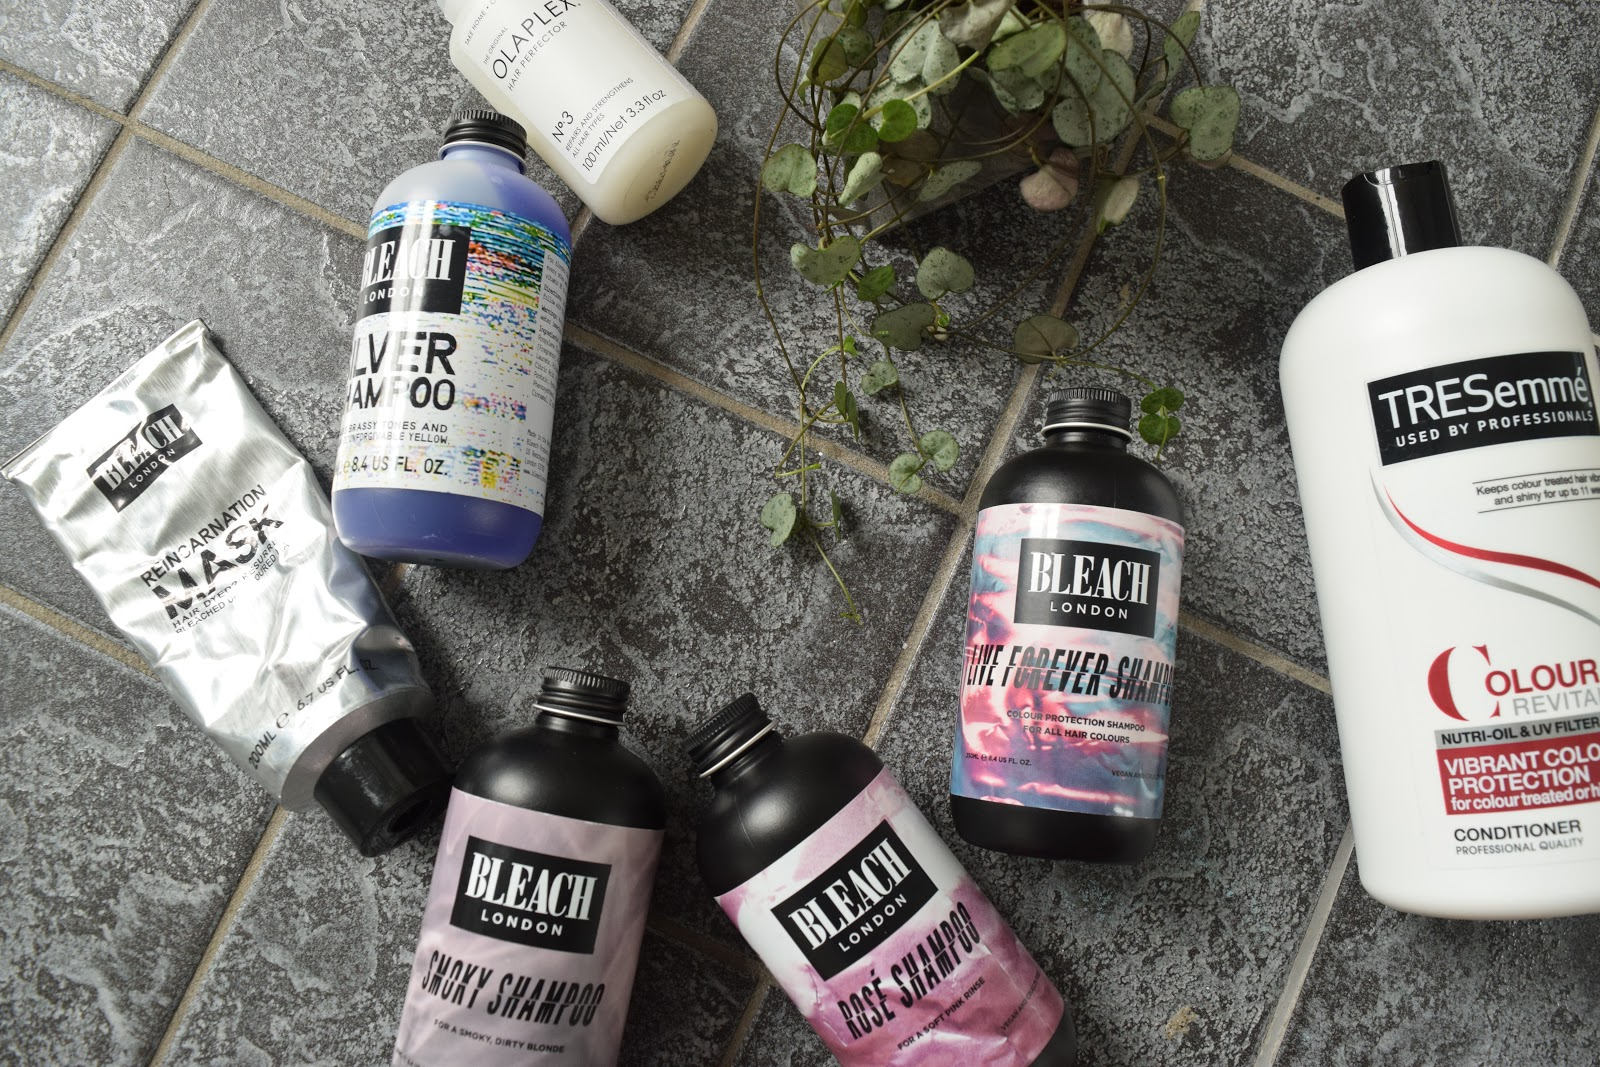 hair products flatlay featuring Bleach London Shampoos, hair treatments and a string of hearts plant